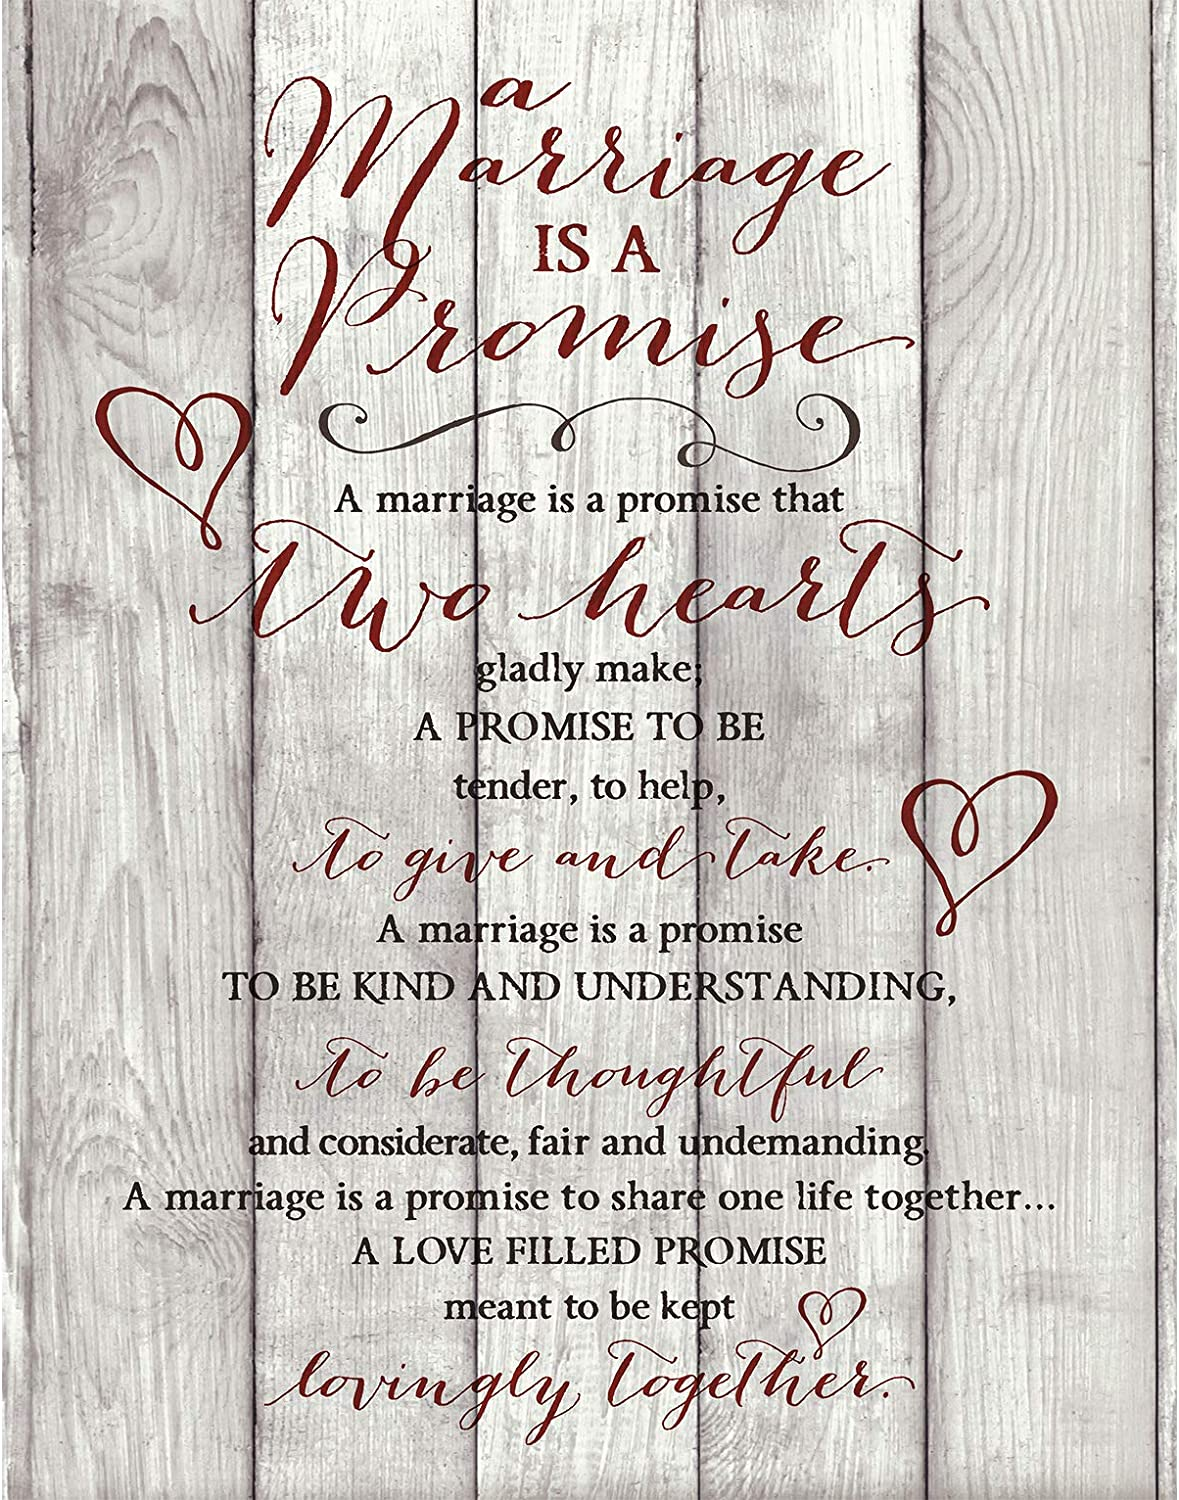 """Marriage Promise Prayer Wood Plaque with Inspiring Quotes 11.75""""x15"""" - Classy Vertical Frame Wall Decoration 